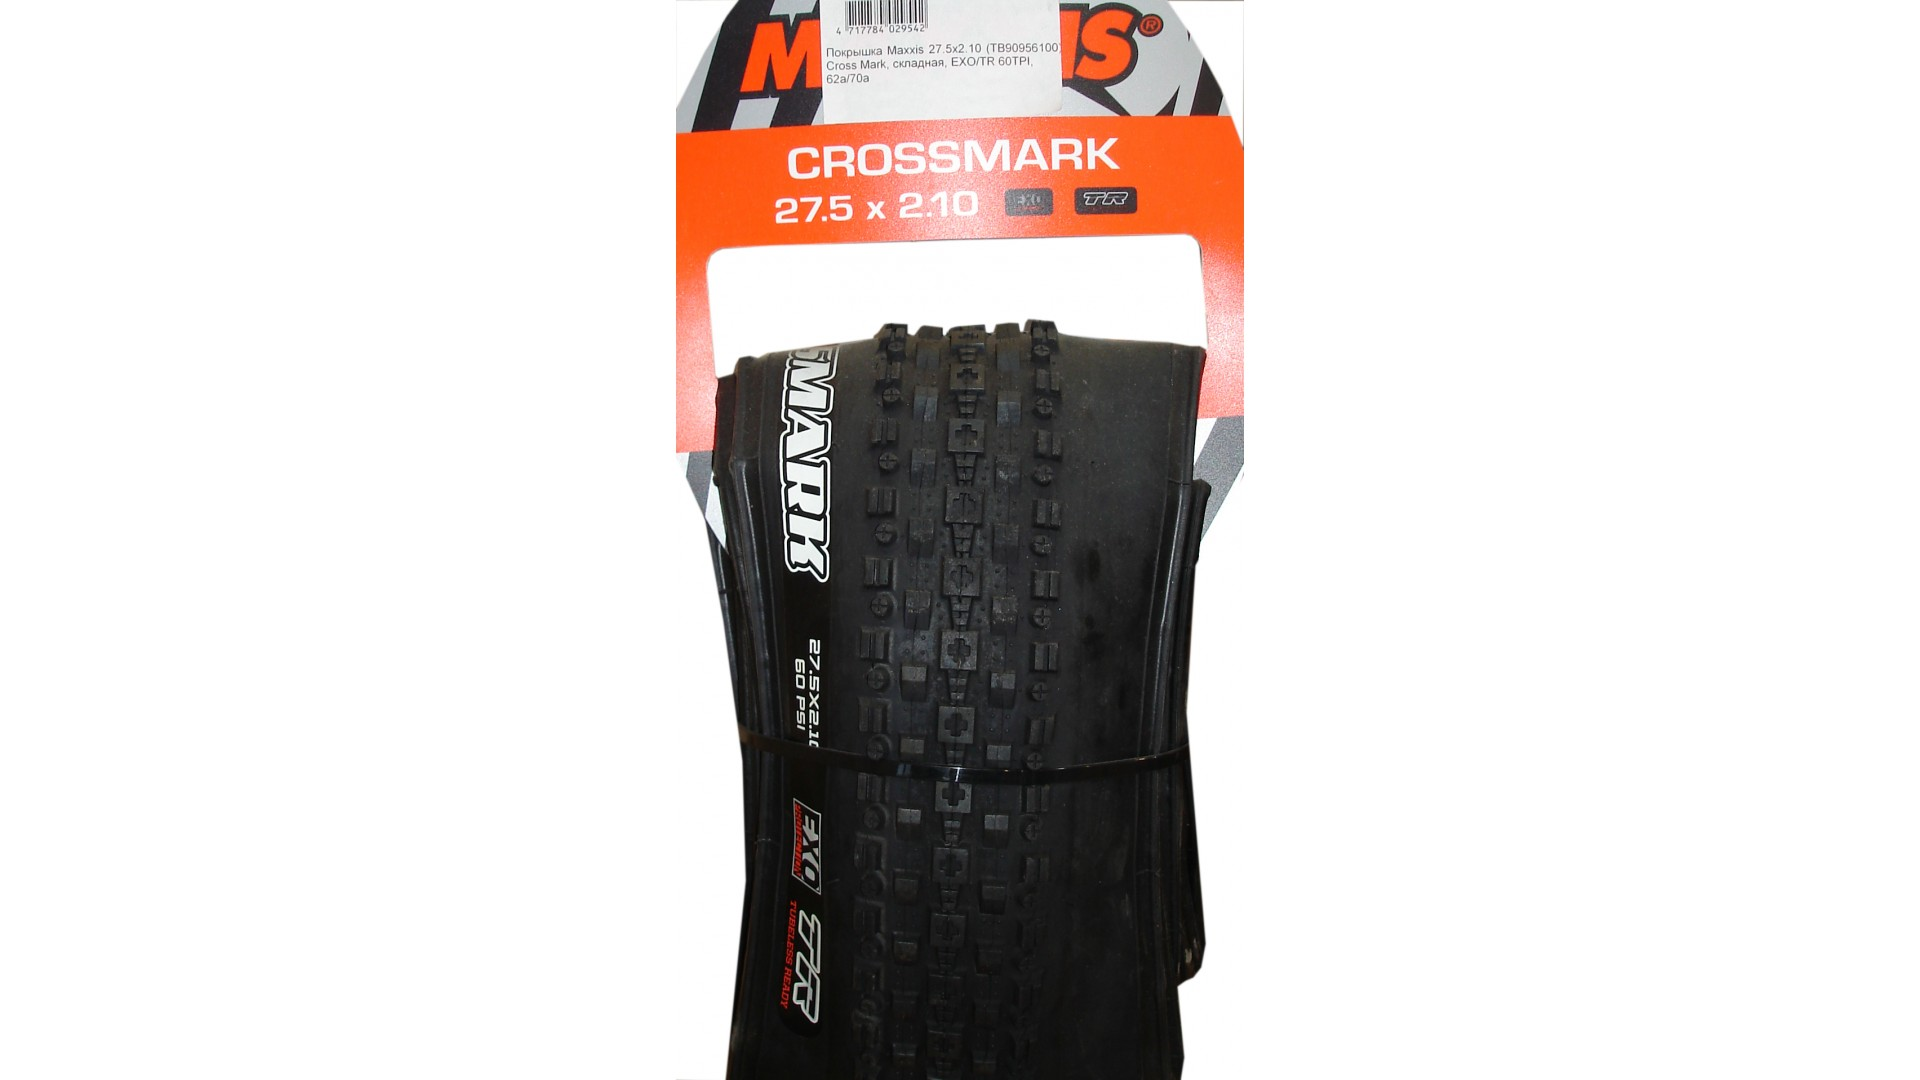 Покрышка Maxxis 27.5x2.10, Cross Mark,складная